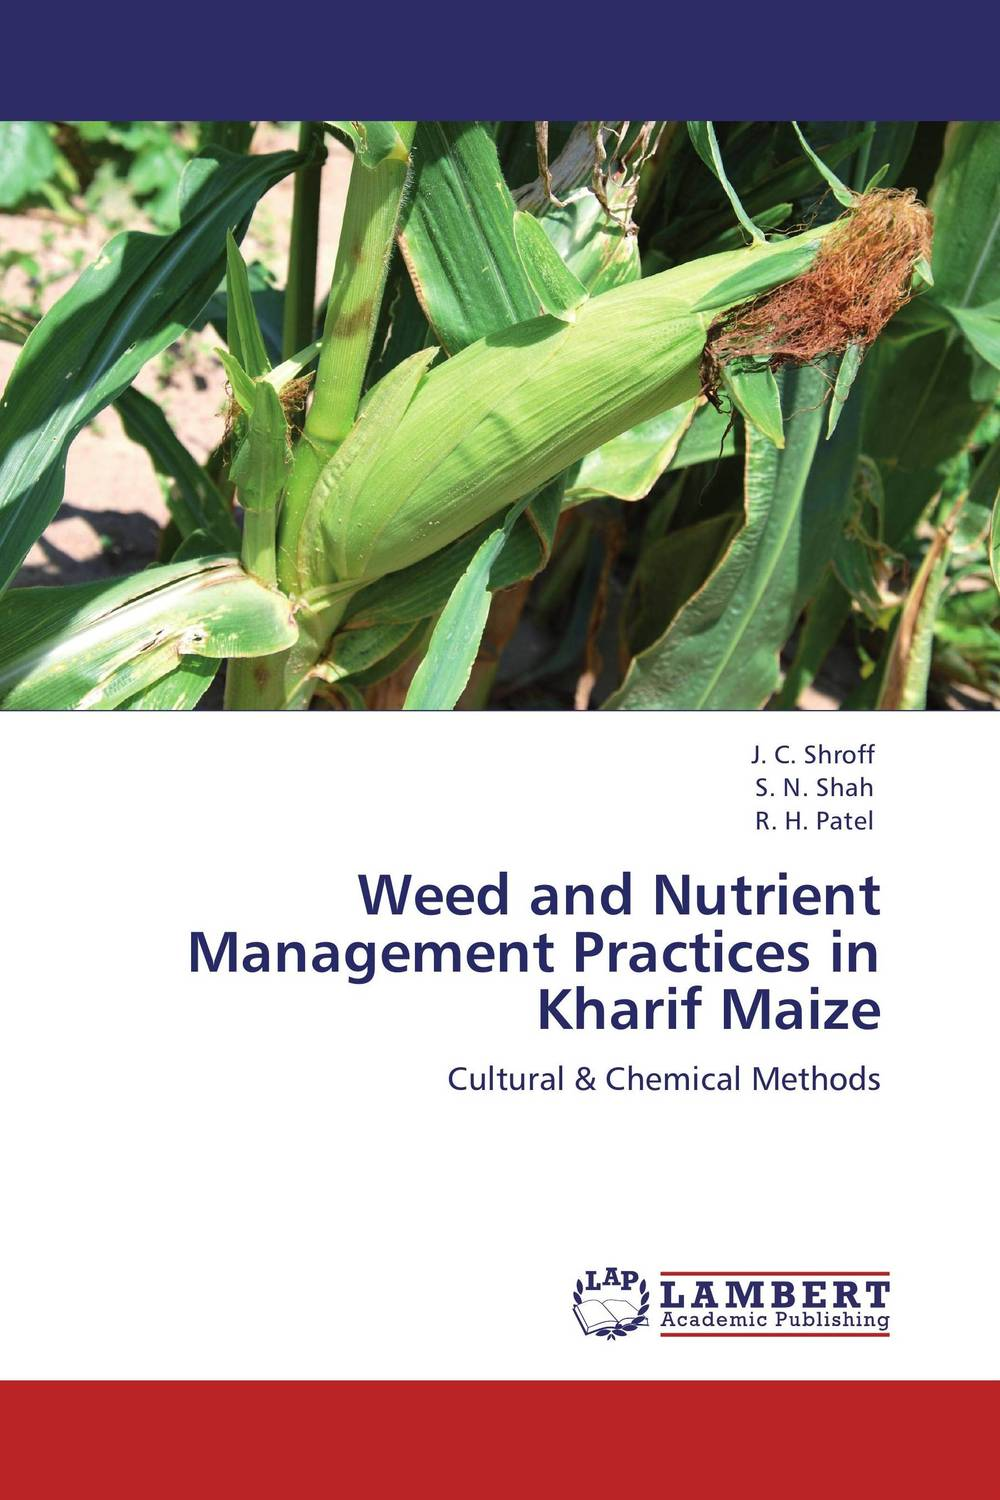 Weed and Nutrient Management Practices in Kharif Maize role of women in agroforestry practices management